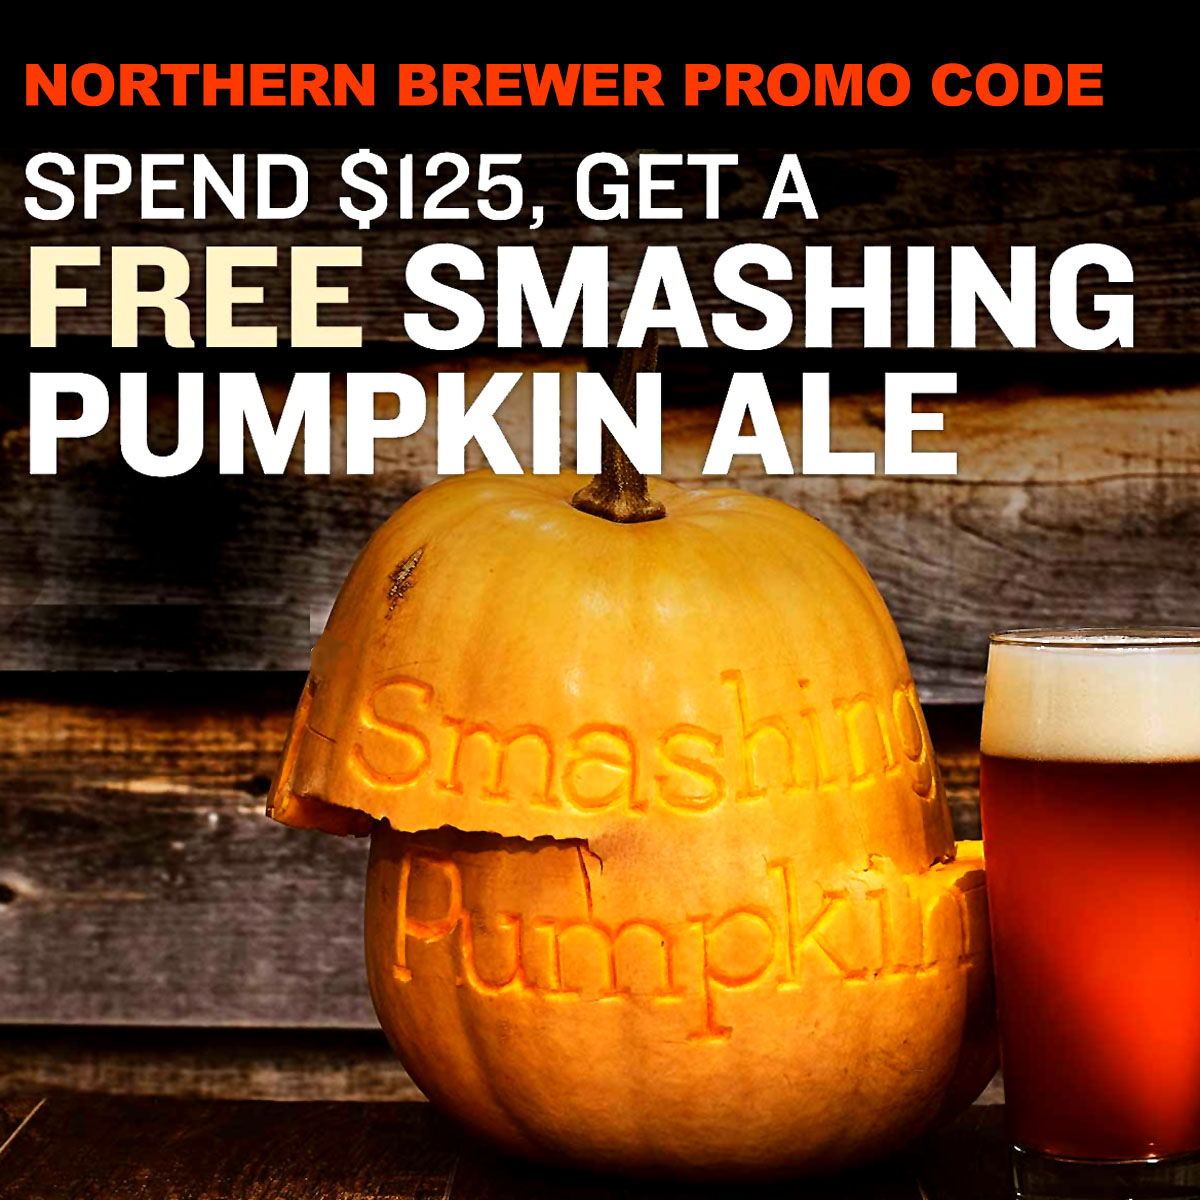 Northern Brewer NorthernBrewer.com September Promo Code for a Free Pumpkin Beer Brewing Kit Coupon Code